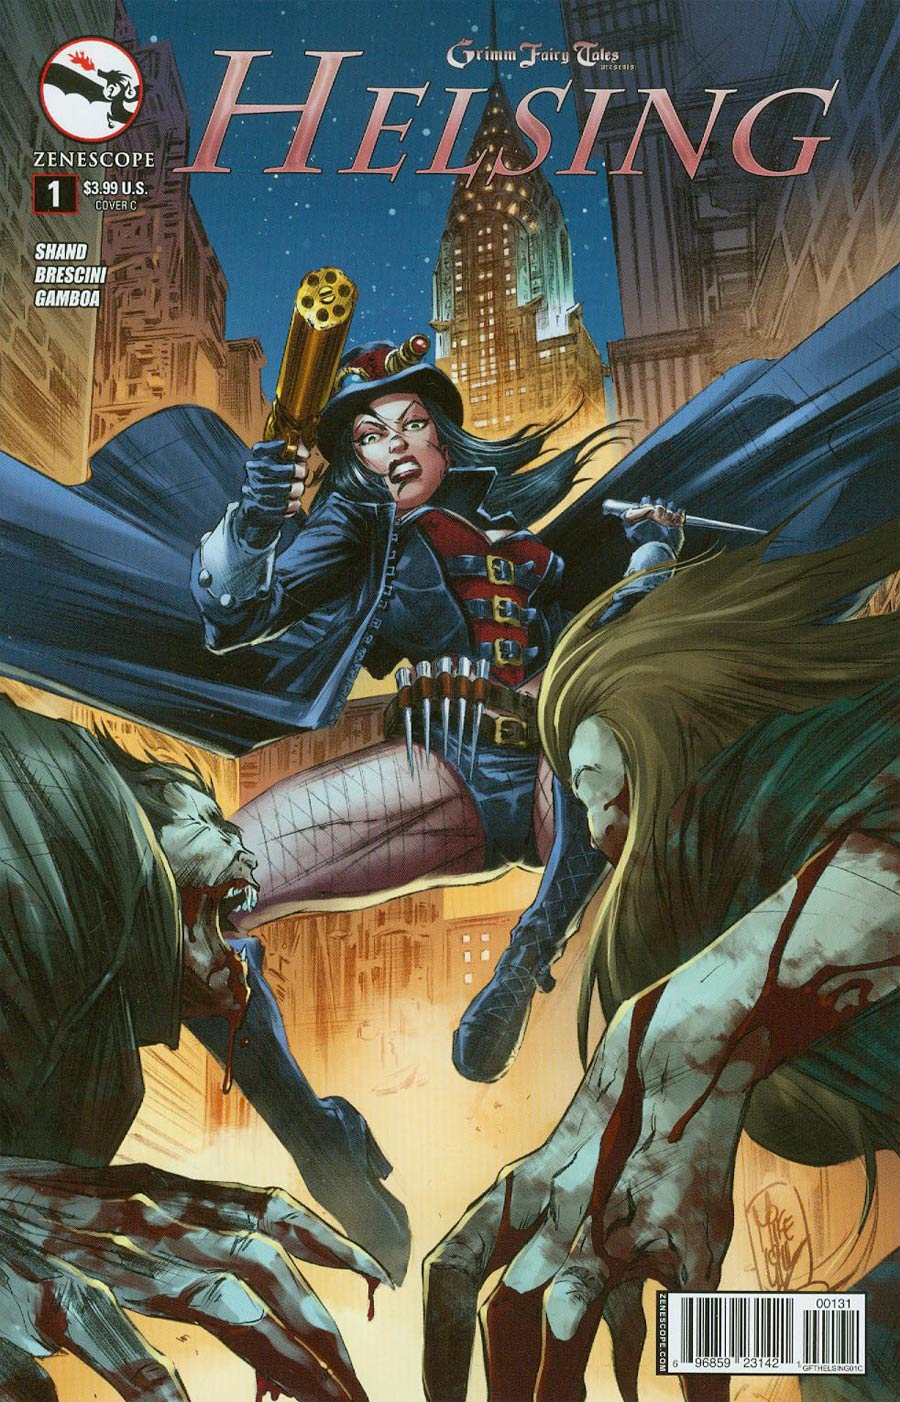 Grimm Fairy Tales Presents Helsing #1 Cover C Mike Lilly